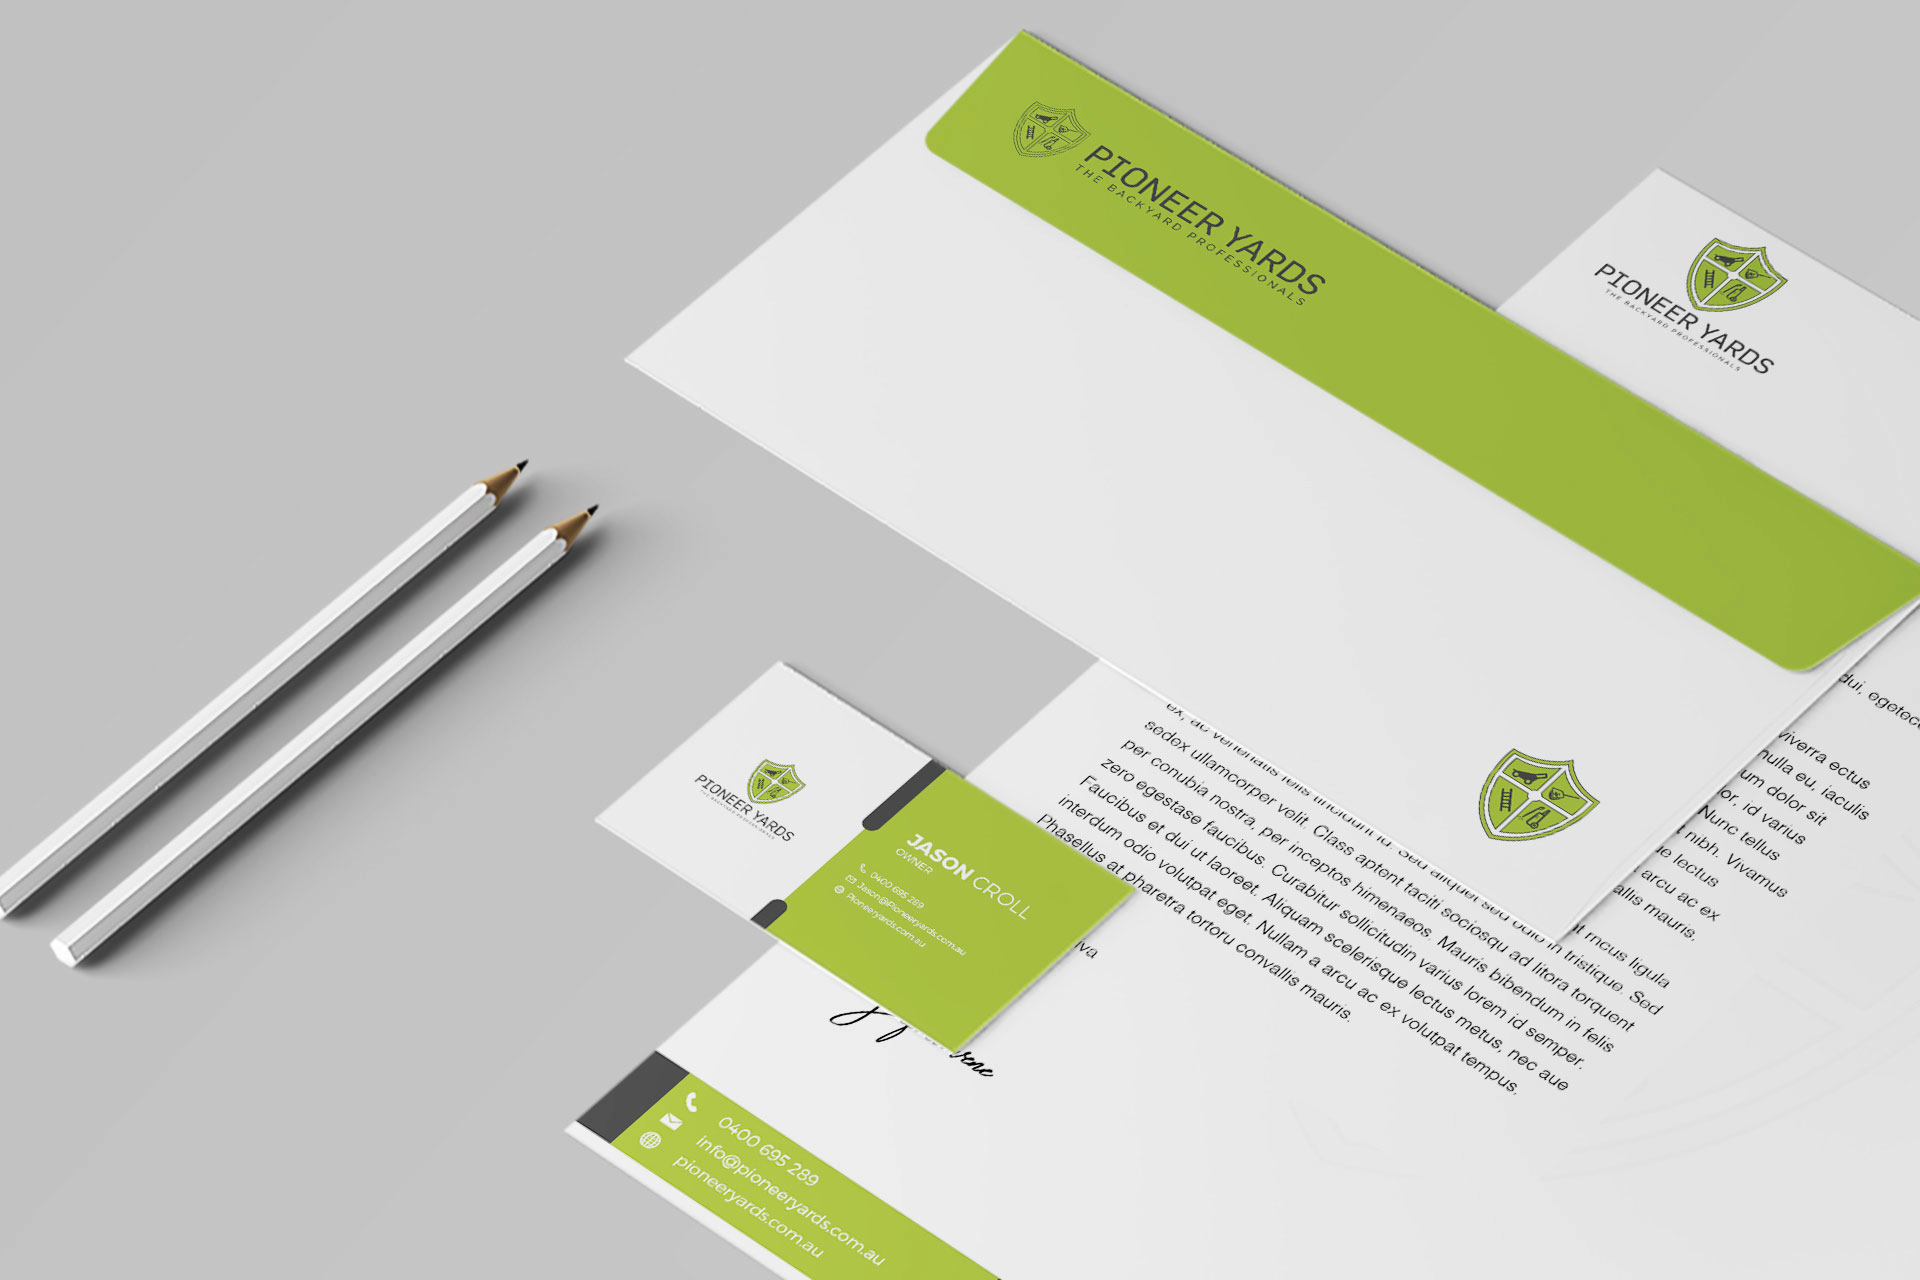 Green & White stationery design mockup ideas| Gardening tools Letterhead |Business card| Envelope| Get Solutions